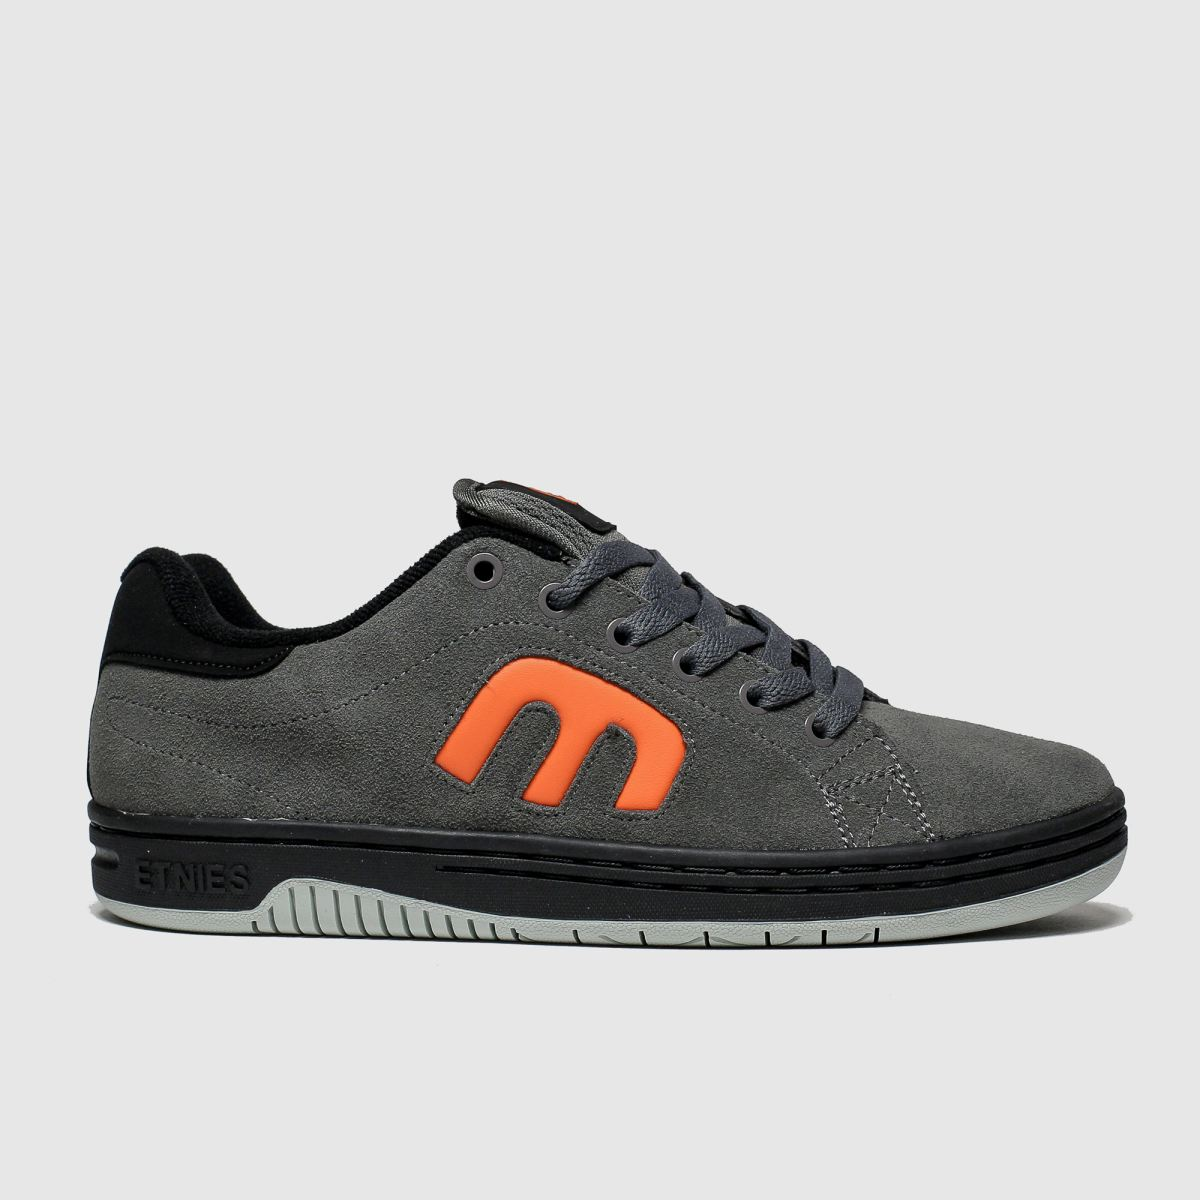 Etnies Etnies Grey & Black Calli-cut Trainers